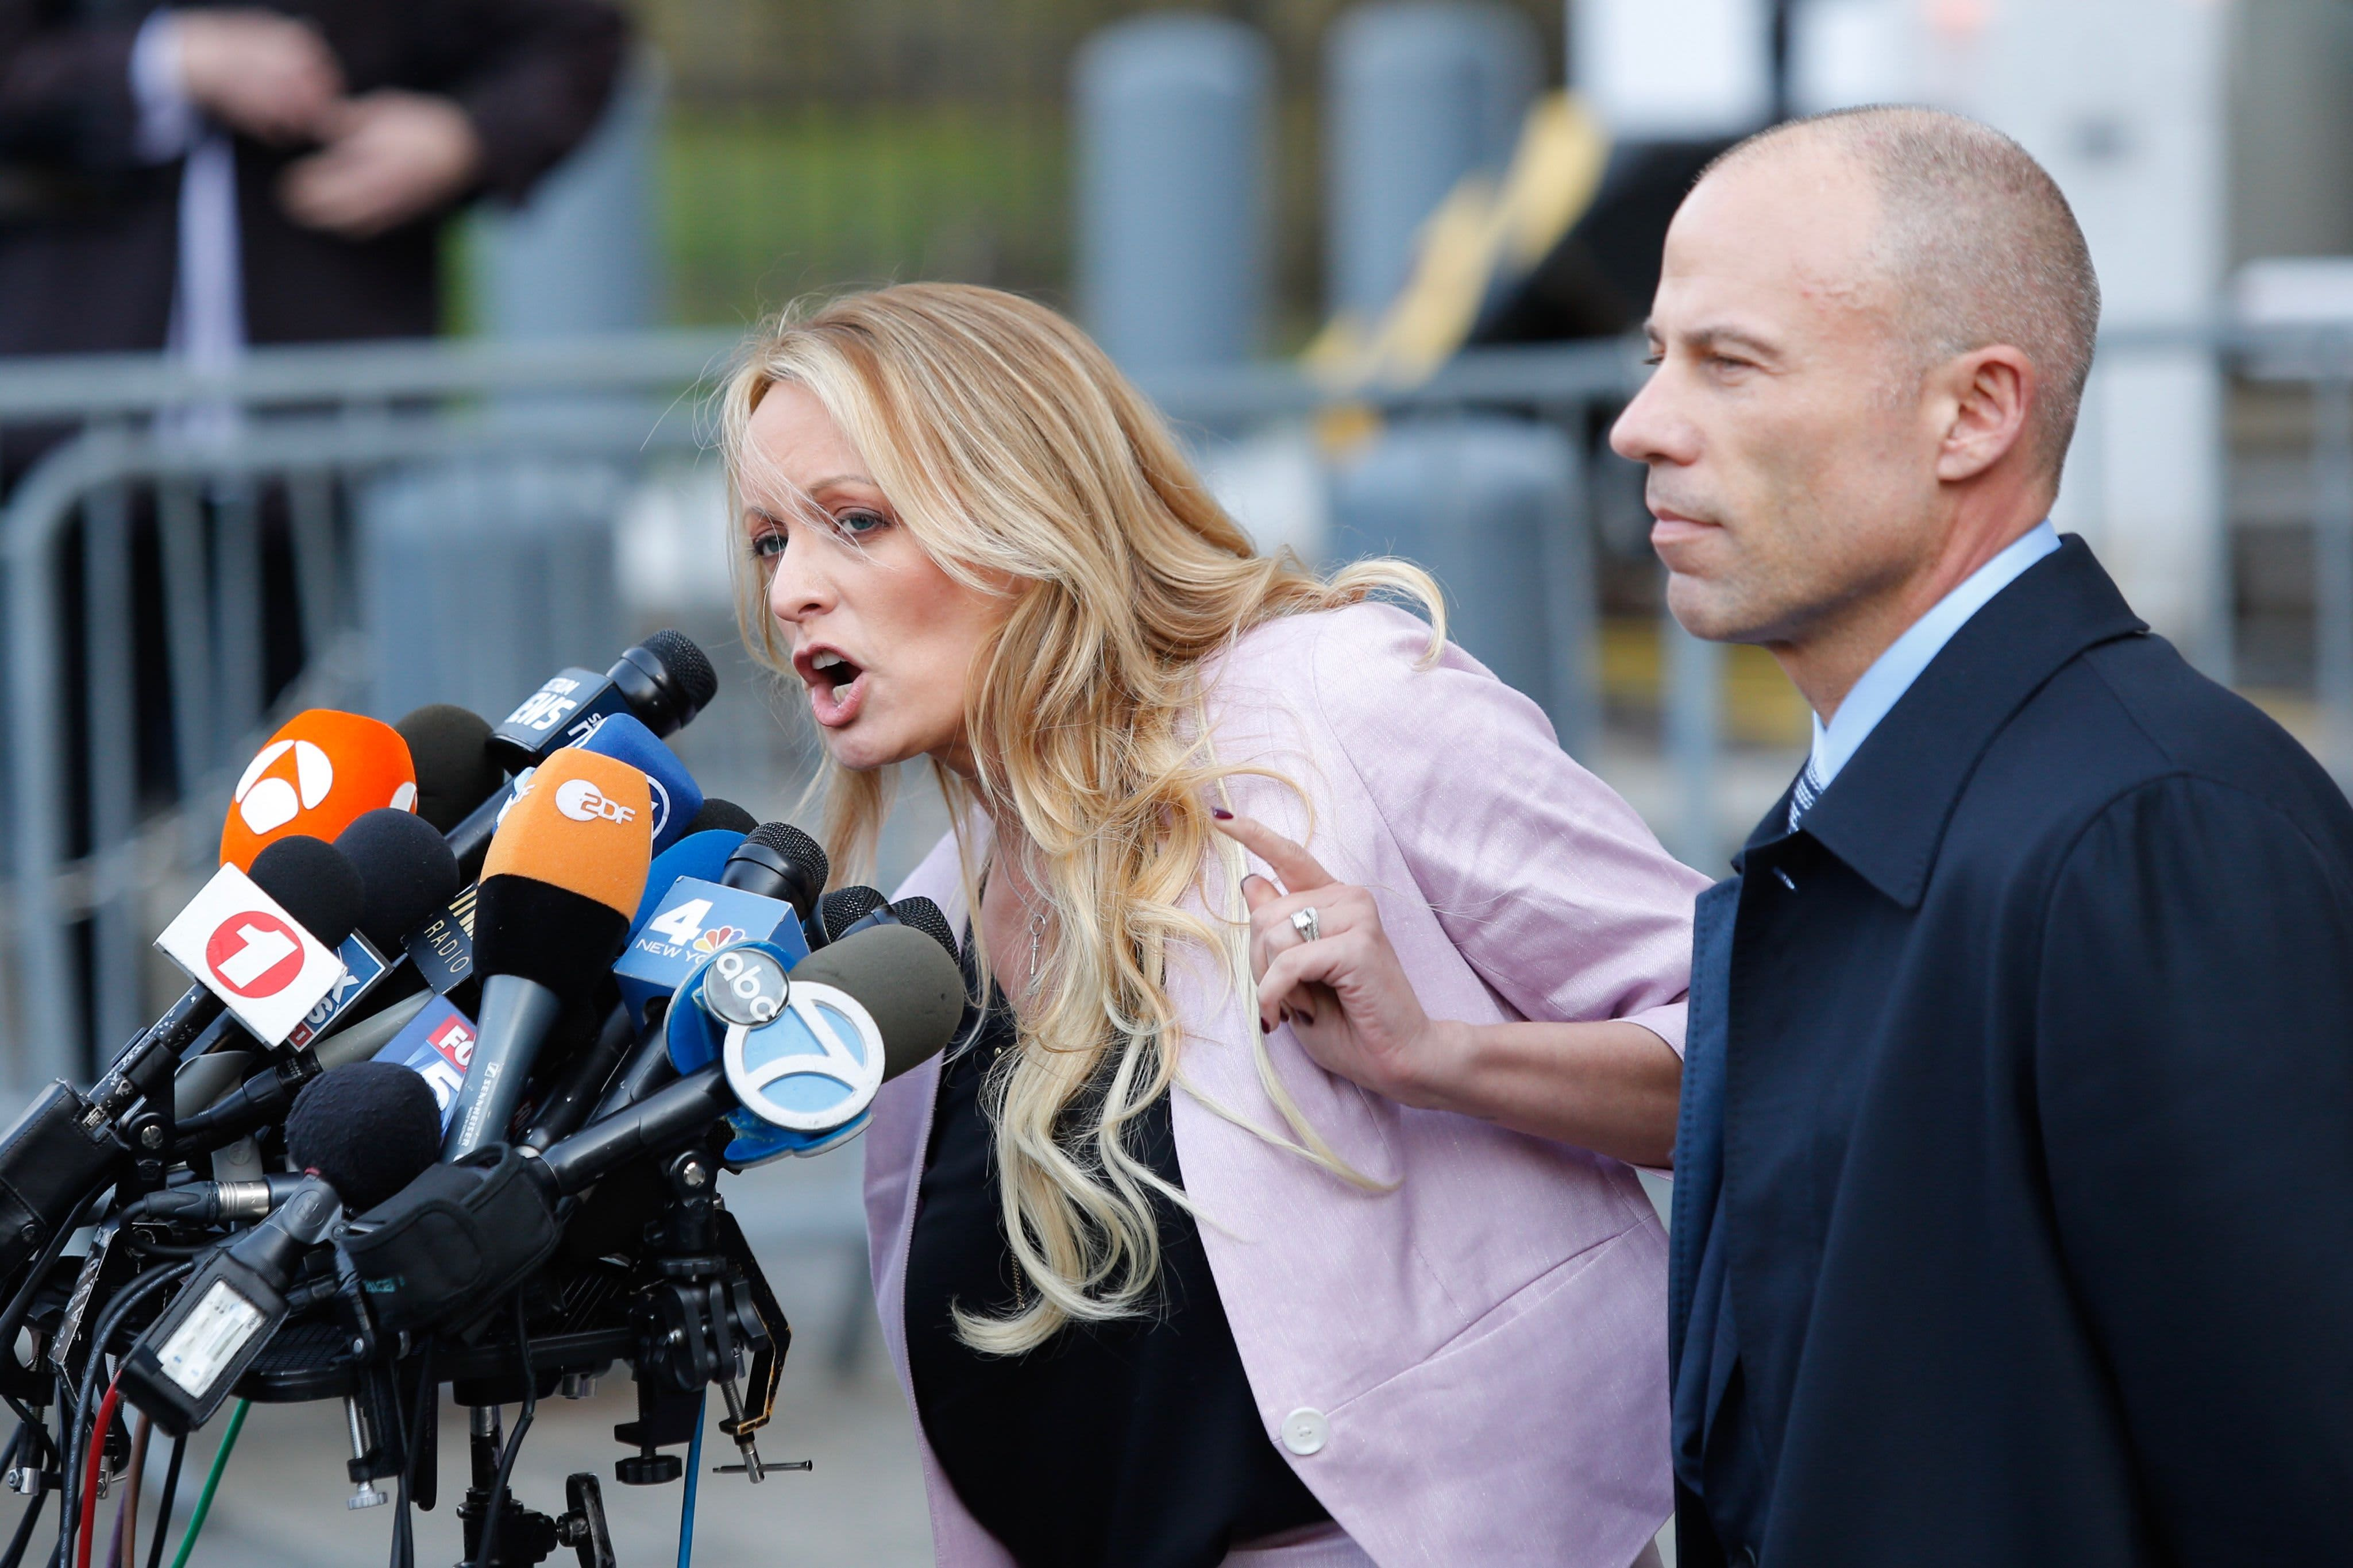 Michael Avenatti charged with ripping off porn star Stormy Daniels, trying to extort Nike in new indictments